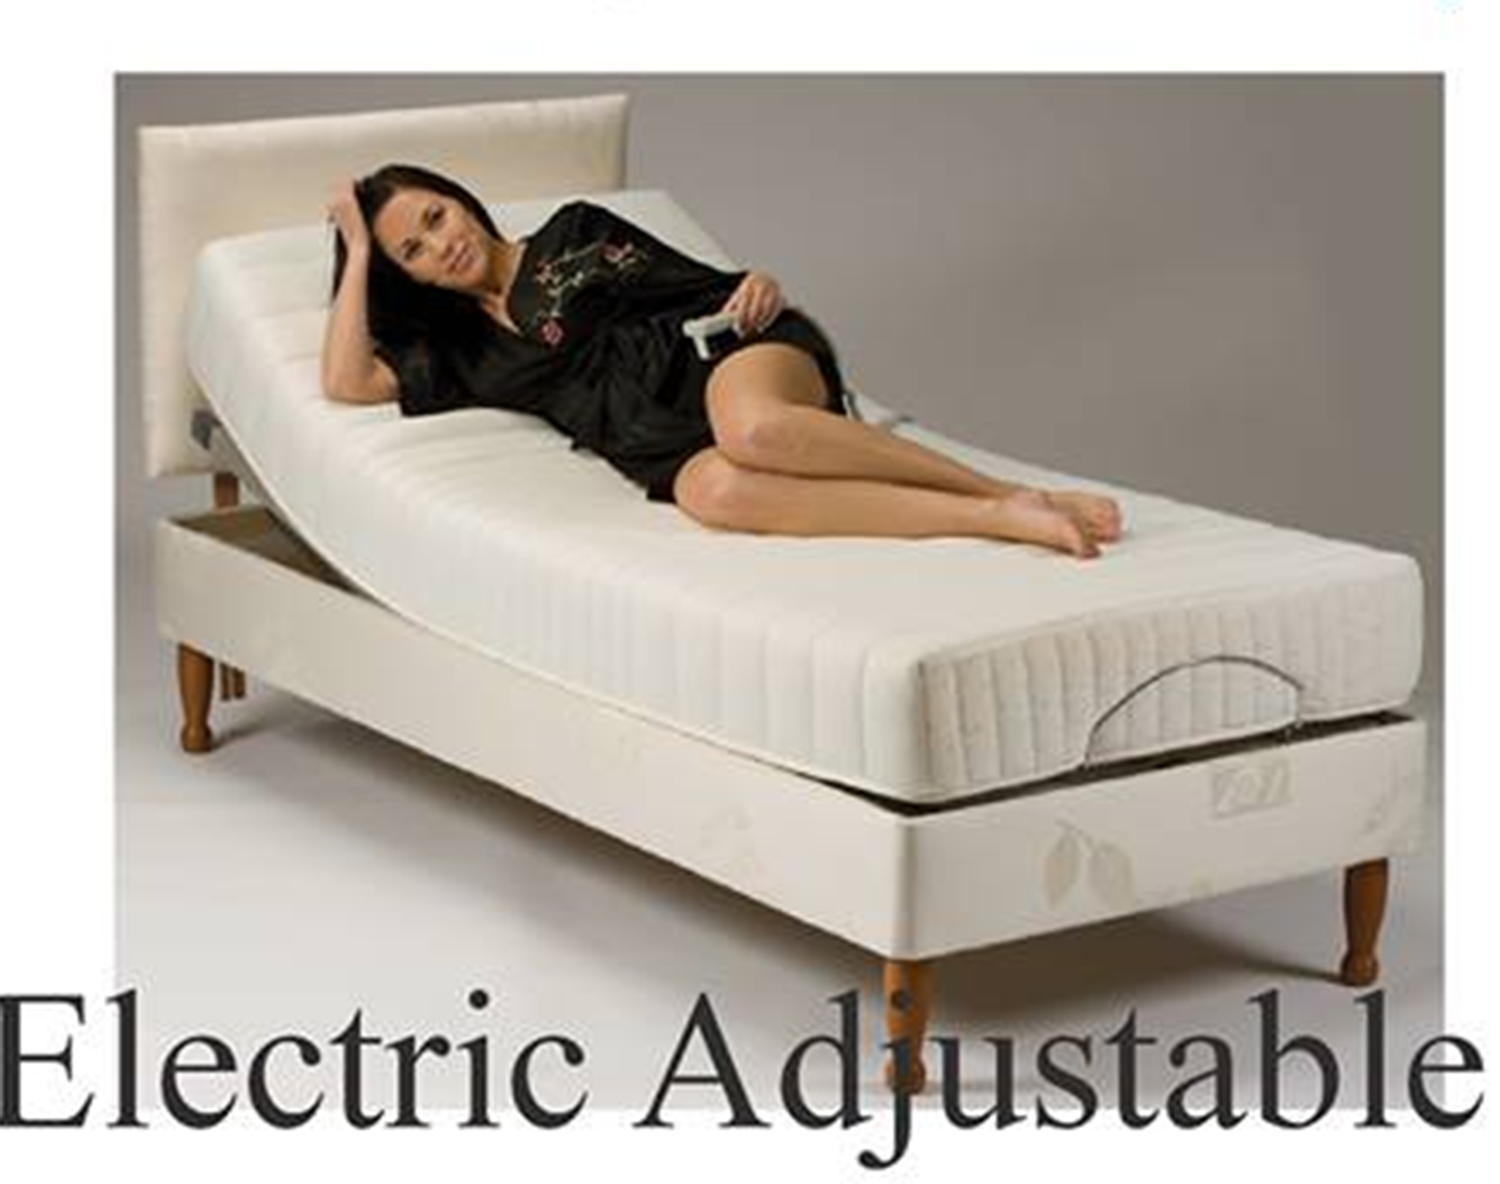 How To Move A Sleep Number Adjustable Bed